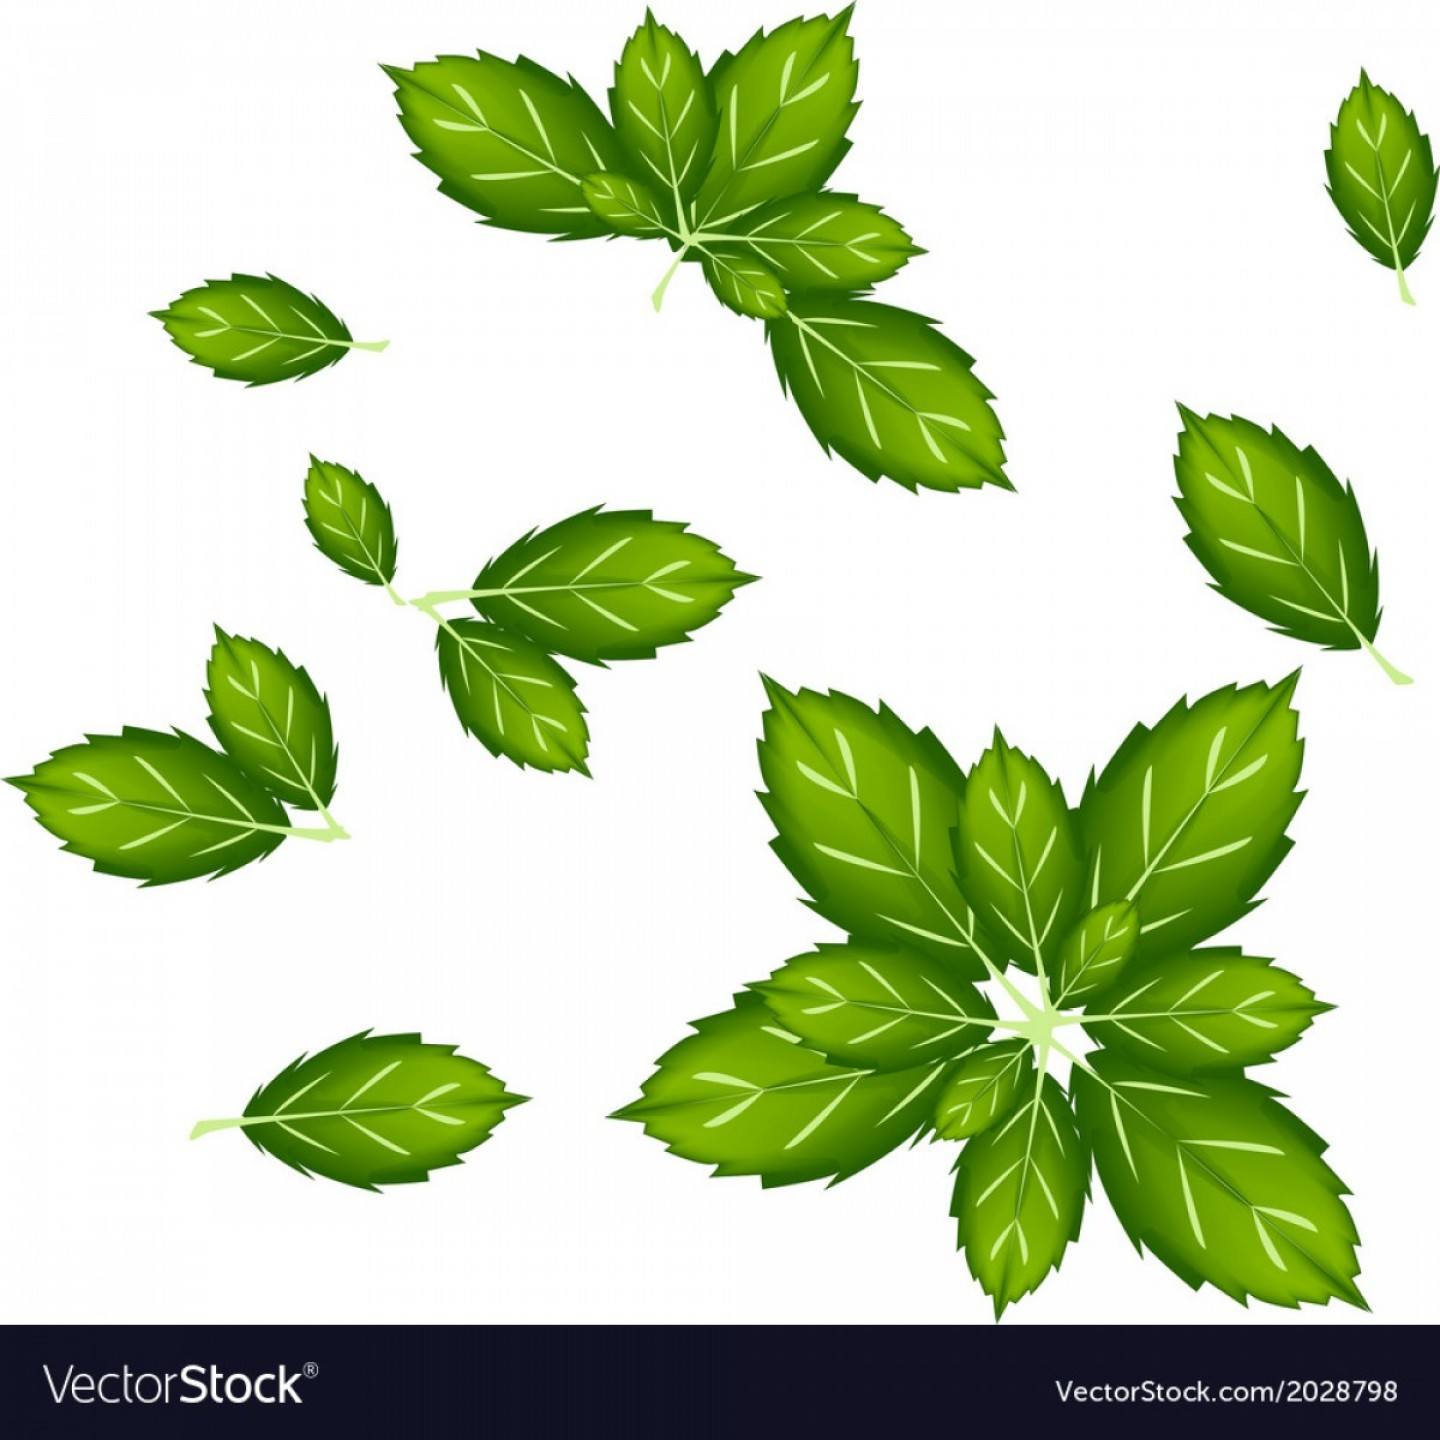 Basil Vector: Set Of Thai Basil Leaves On White Background Vector